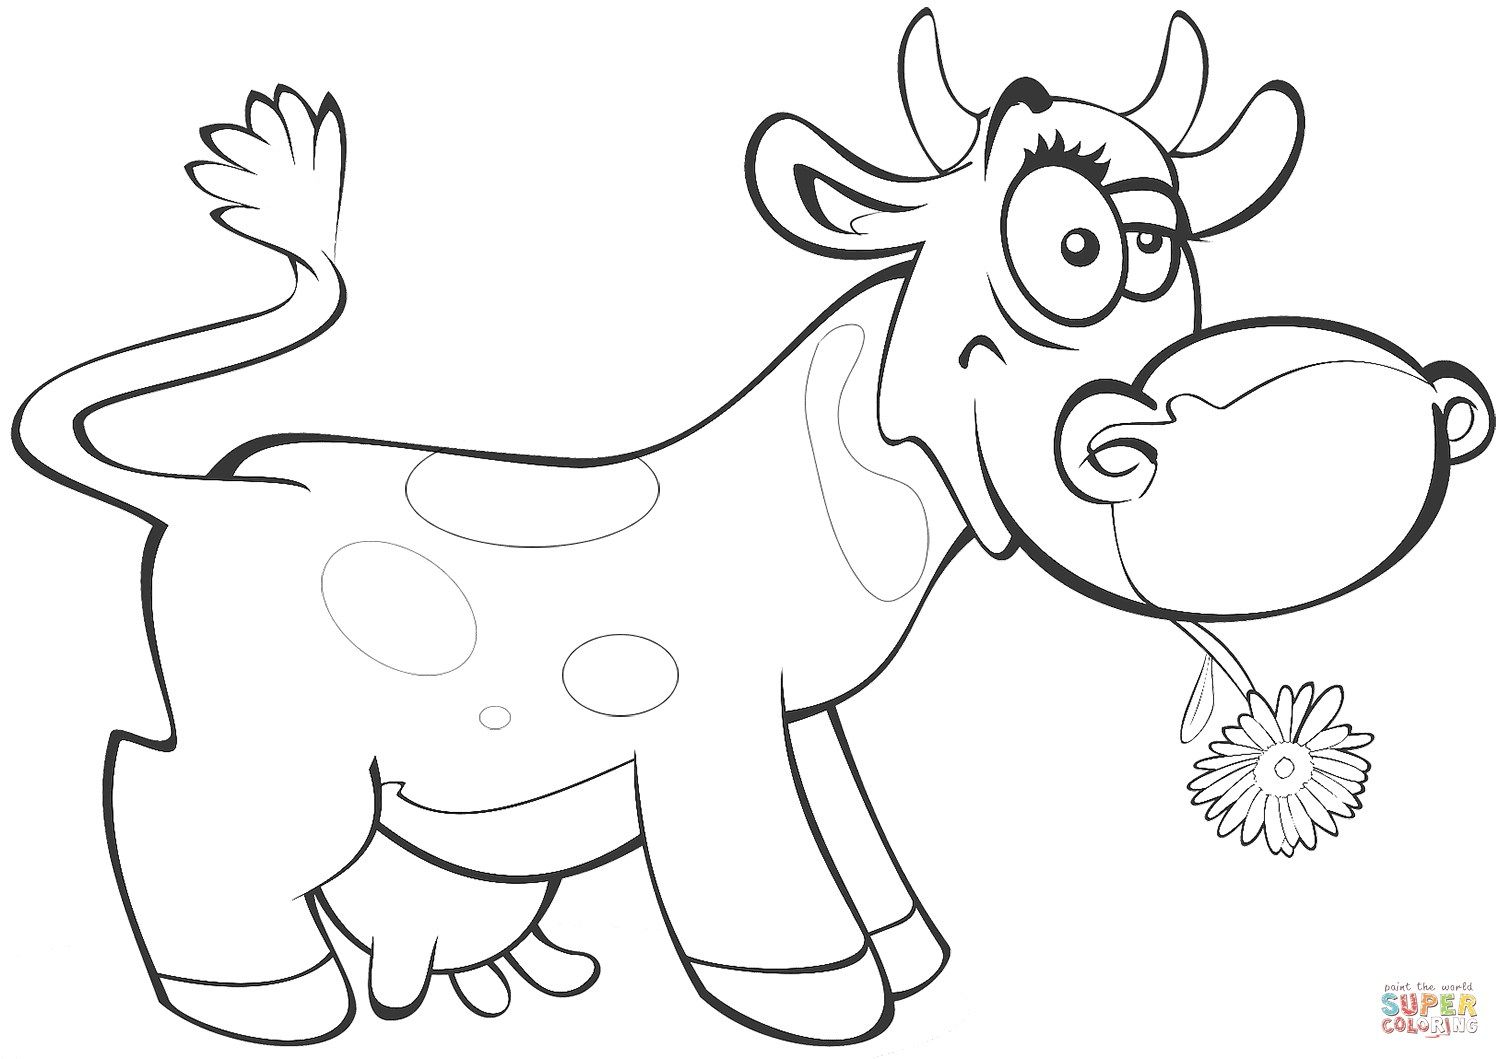 25 Best Picture Of Cow Coloring Page Davemelillo Com Animal Coloring Pages Coloring Pages Coloring Pages For Kids